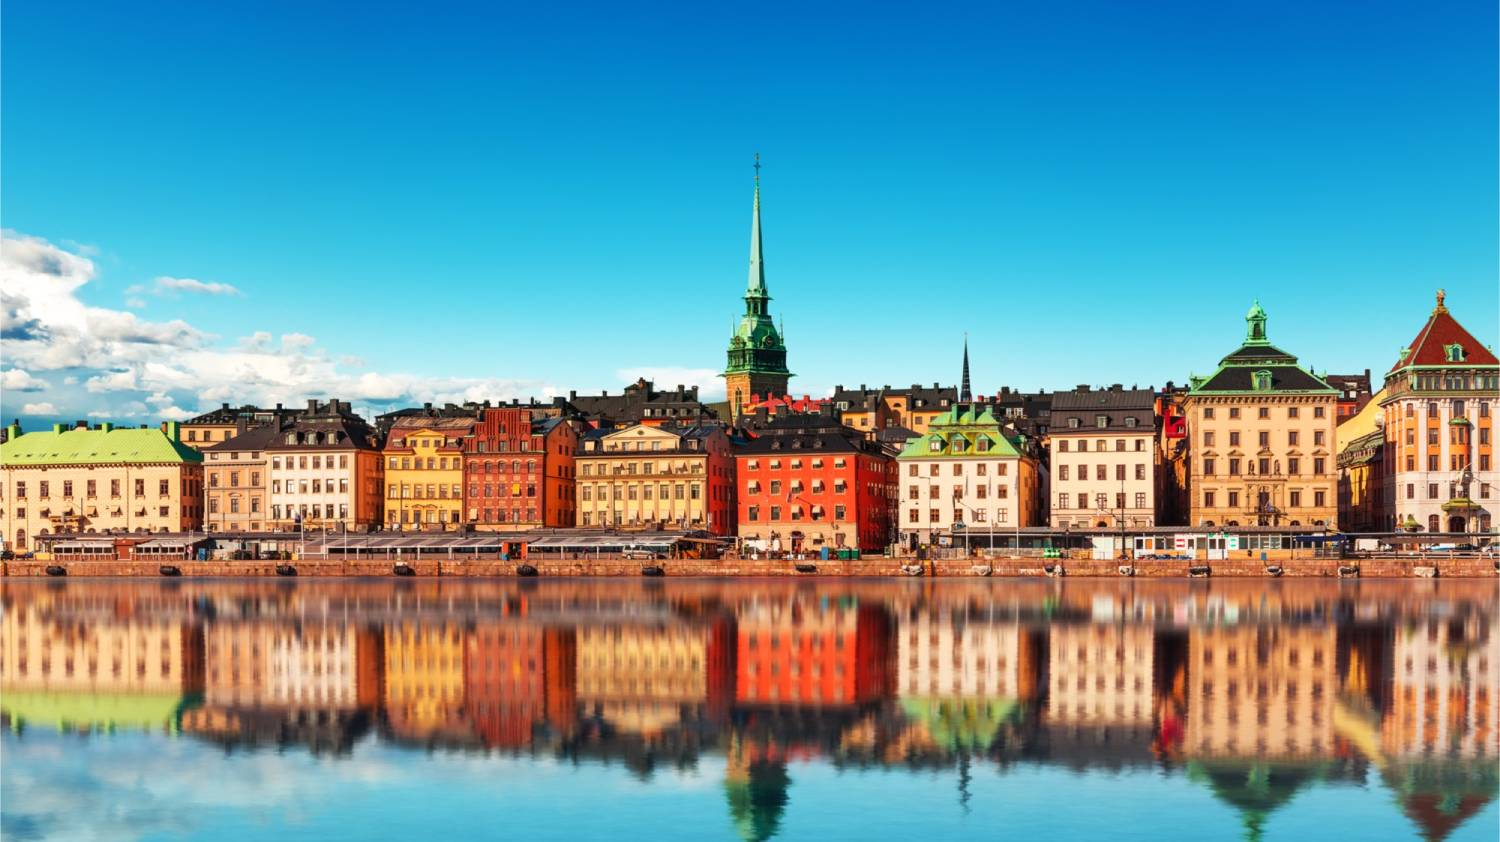 Gamla Stan - Things To Do In Stockholm